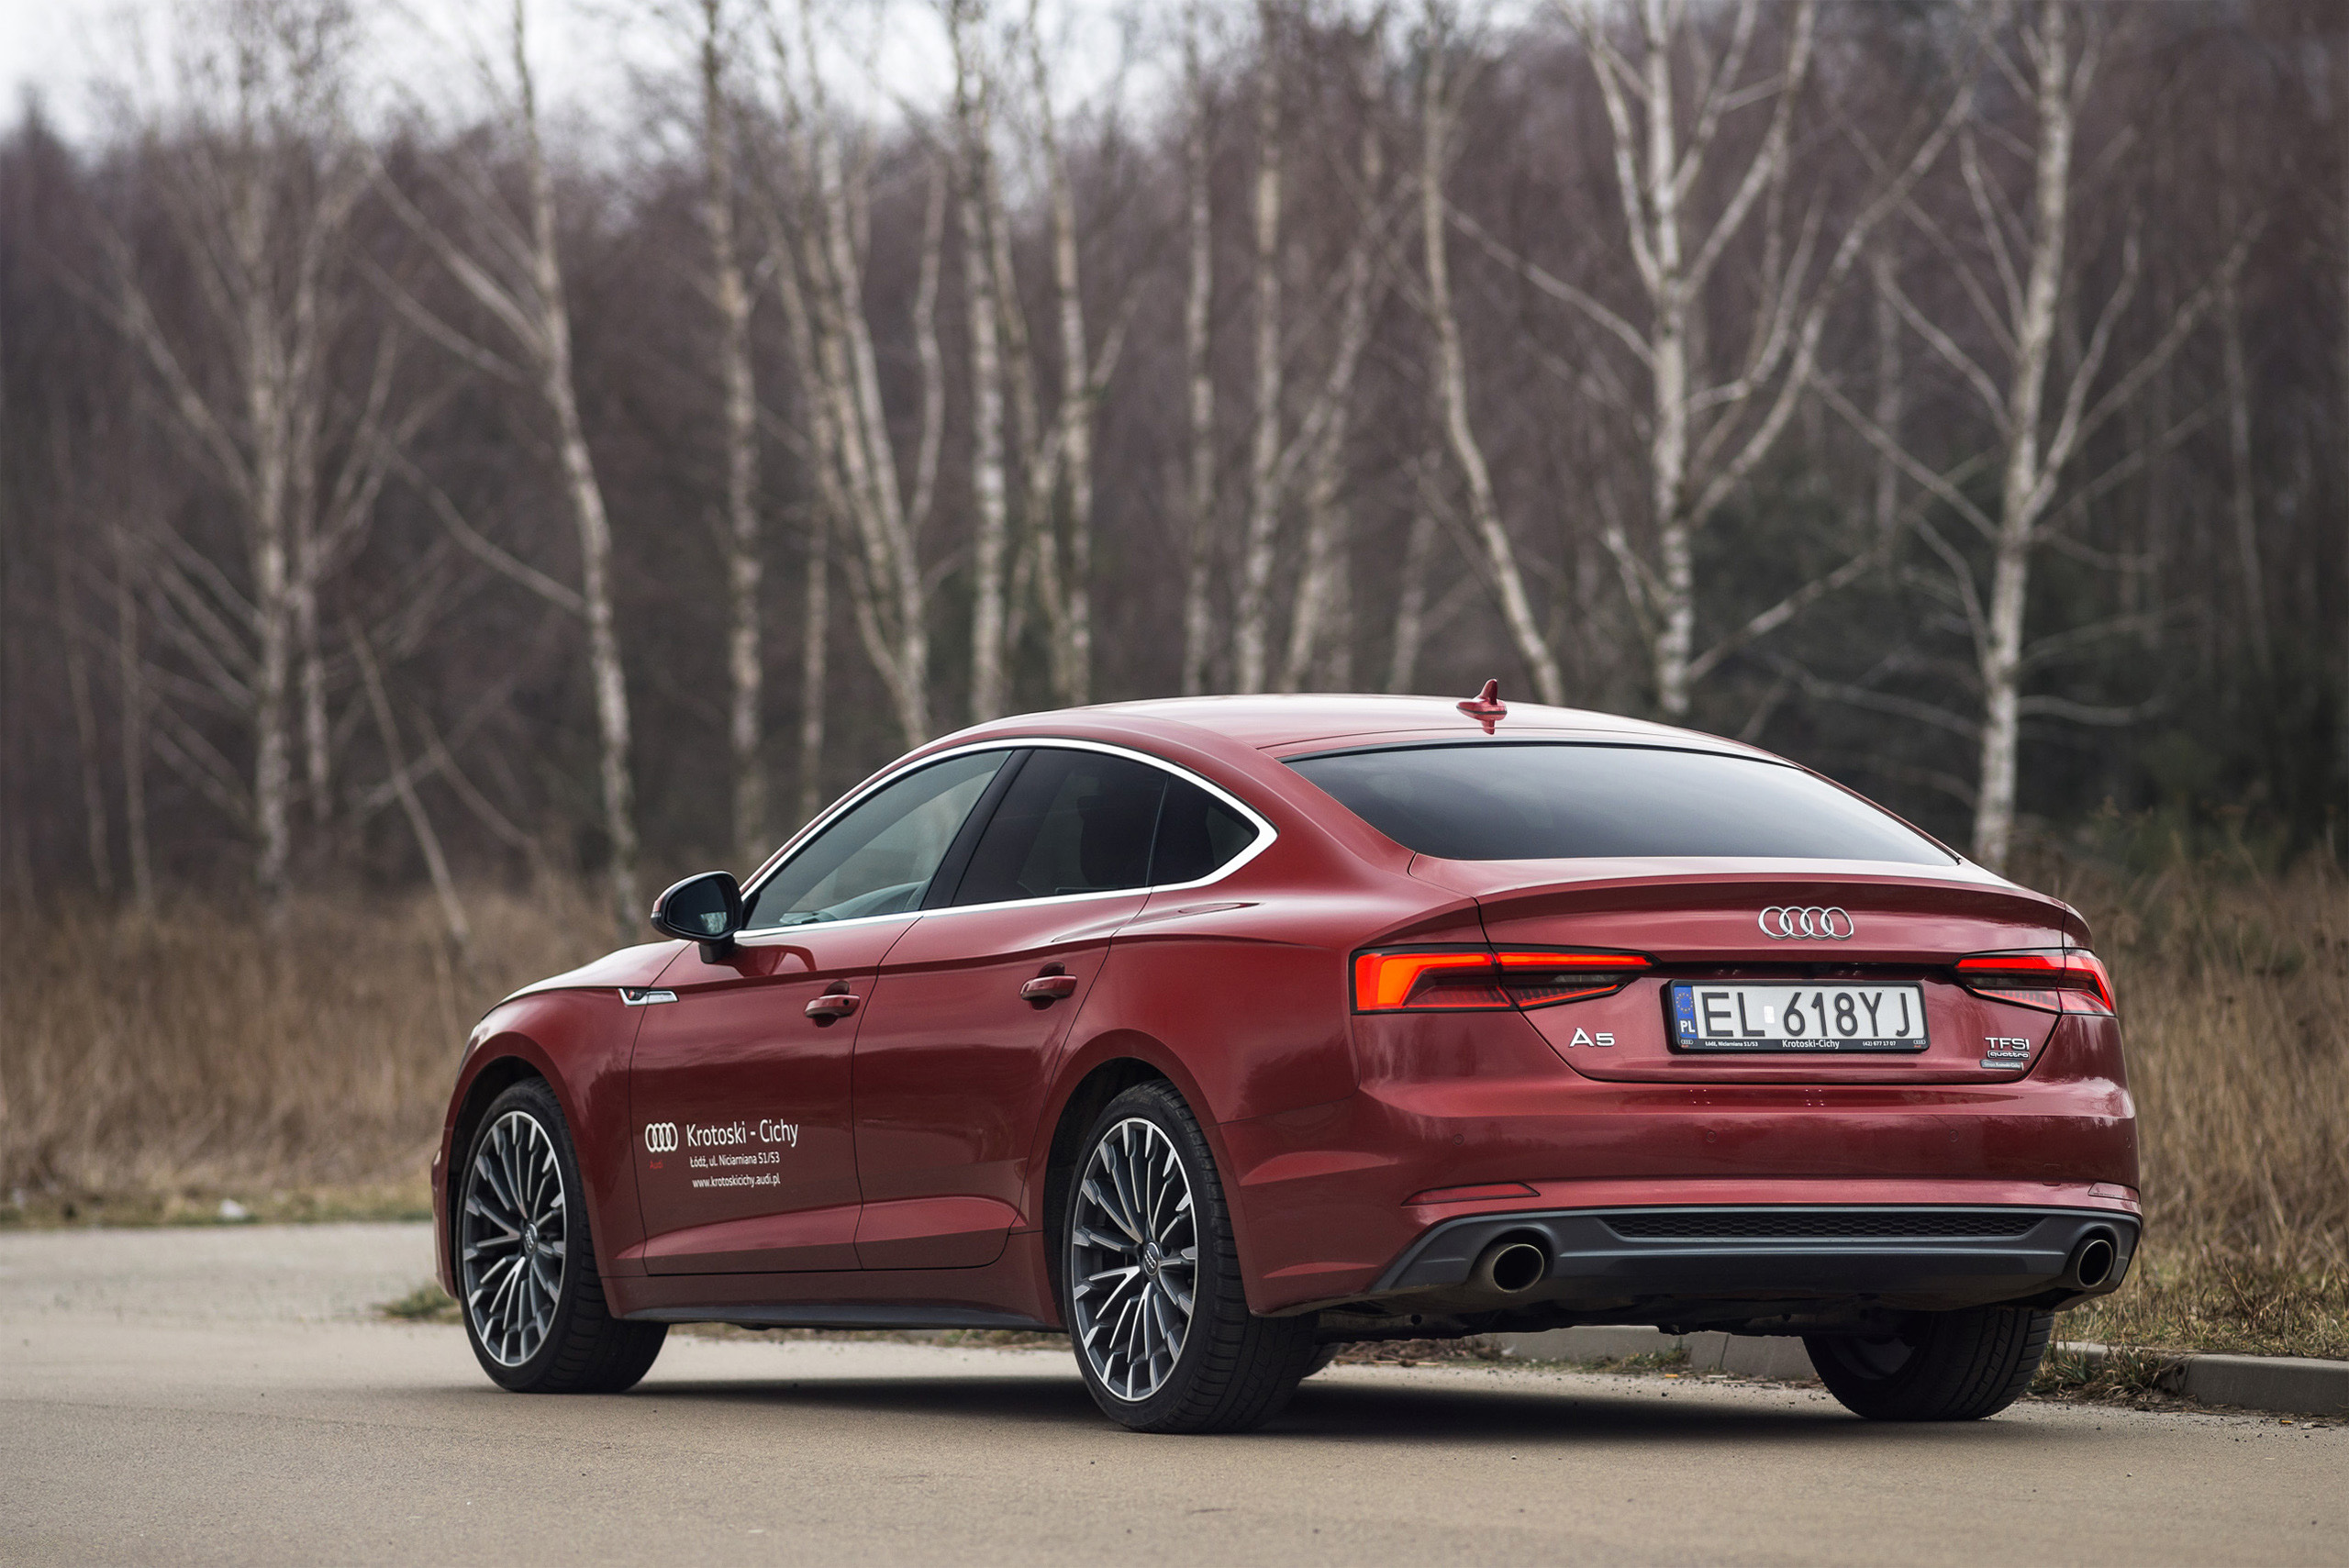 Audi a5 20 tdi quattro sline coupe review